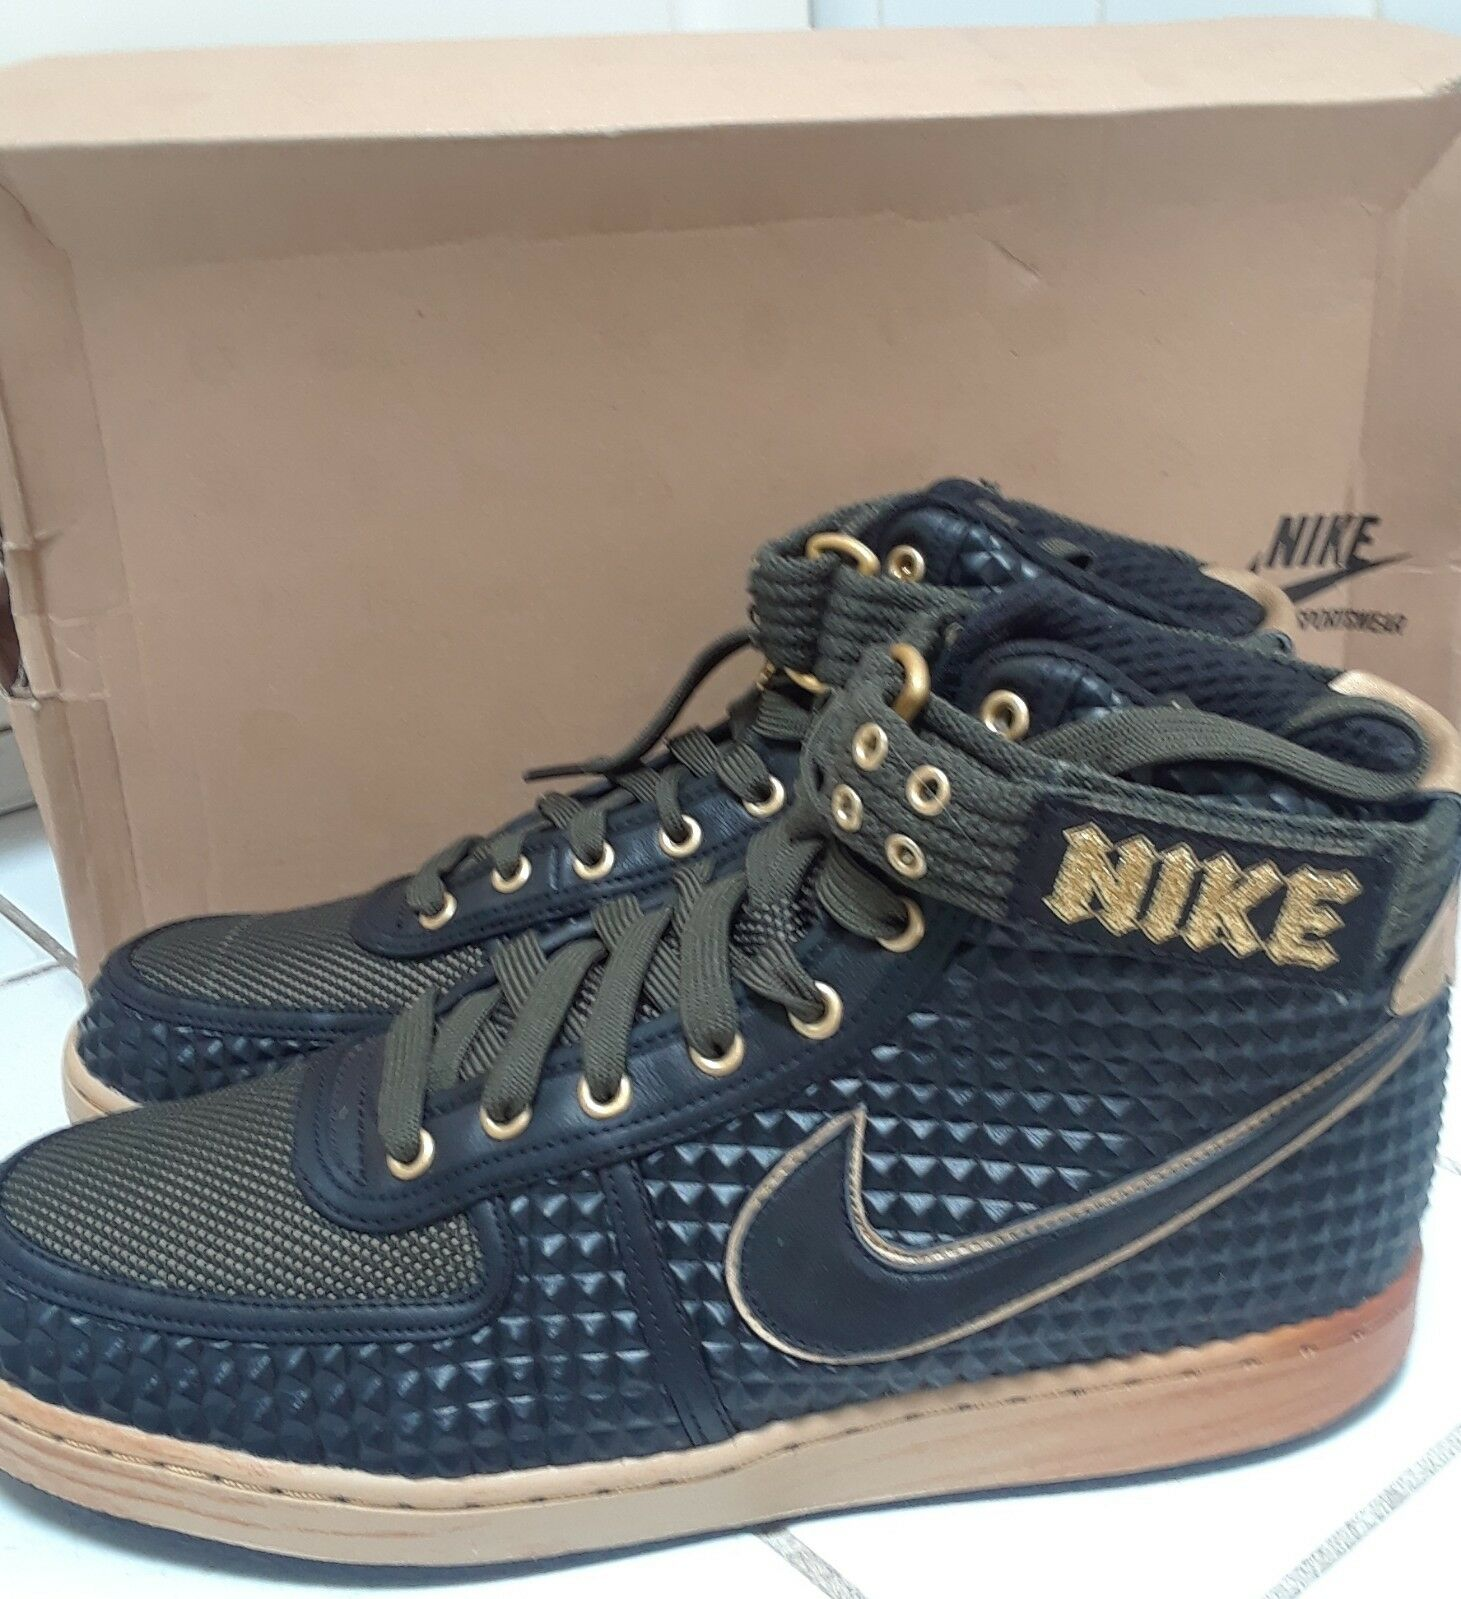 NIKE Vandal Rock N Roll size 11, BRAND NEW, 100% Authentic